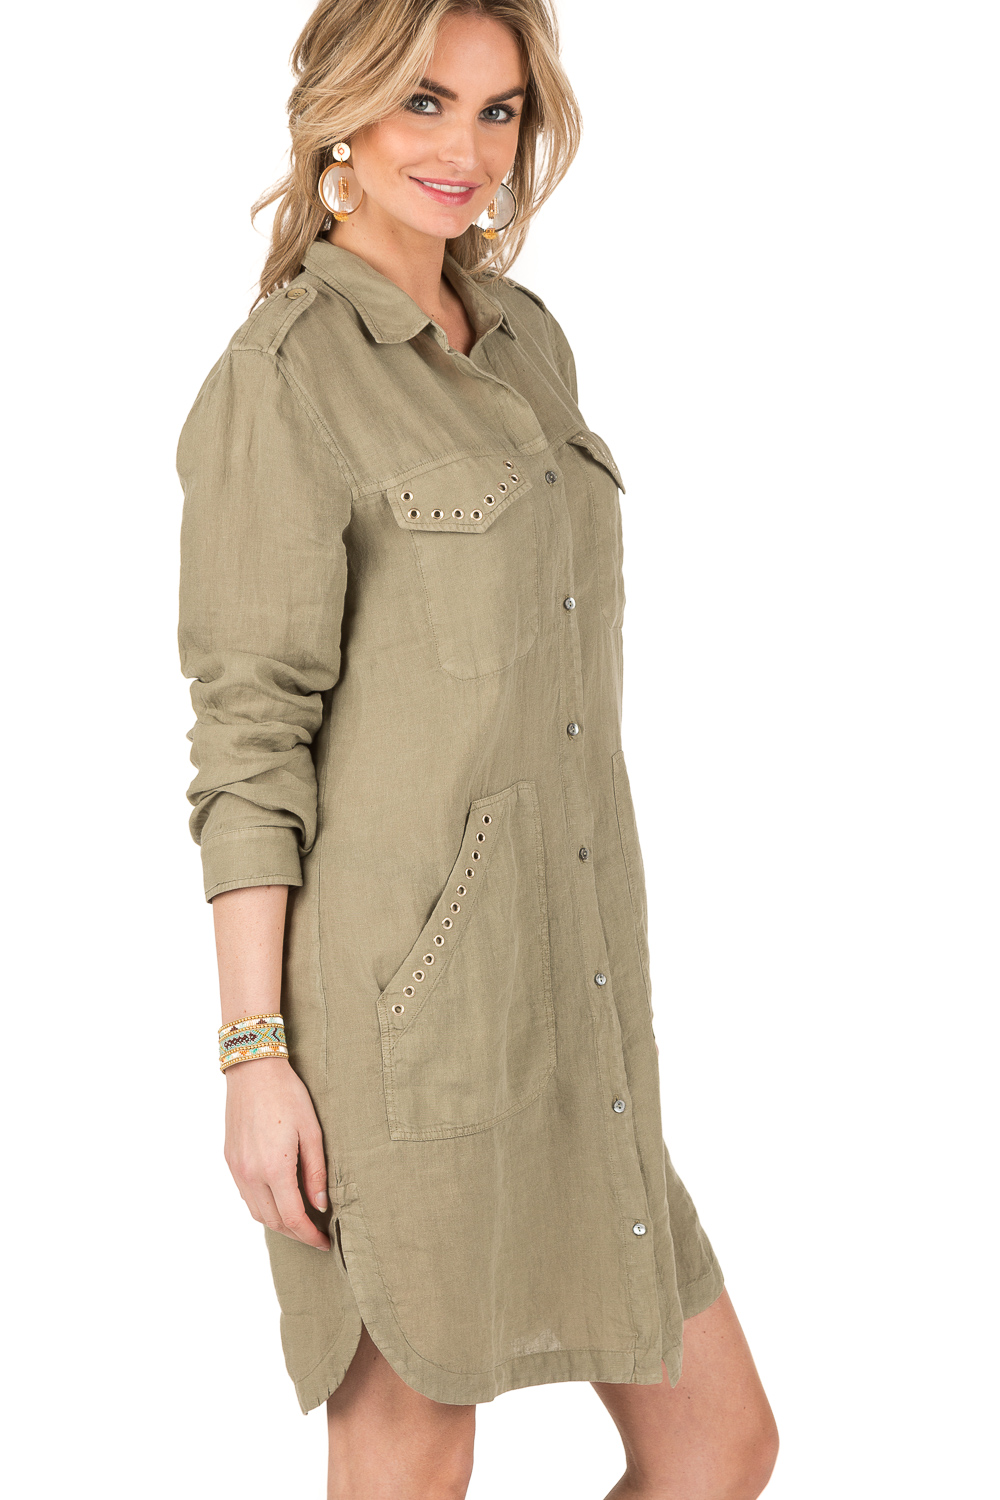 Hedendaags Linen blouse dress Azeilia | army green... | MASONS | Little Soho AK-24